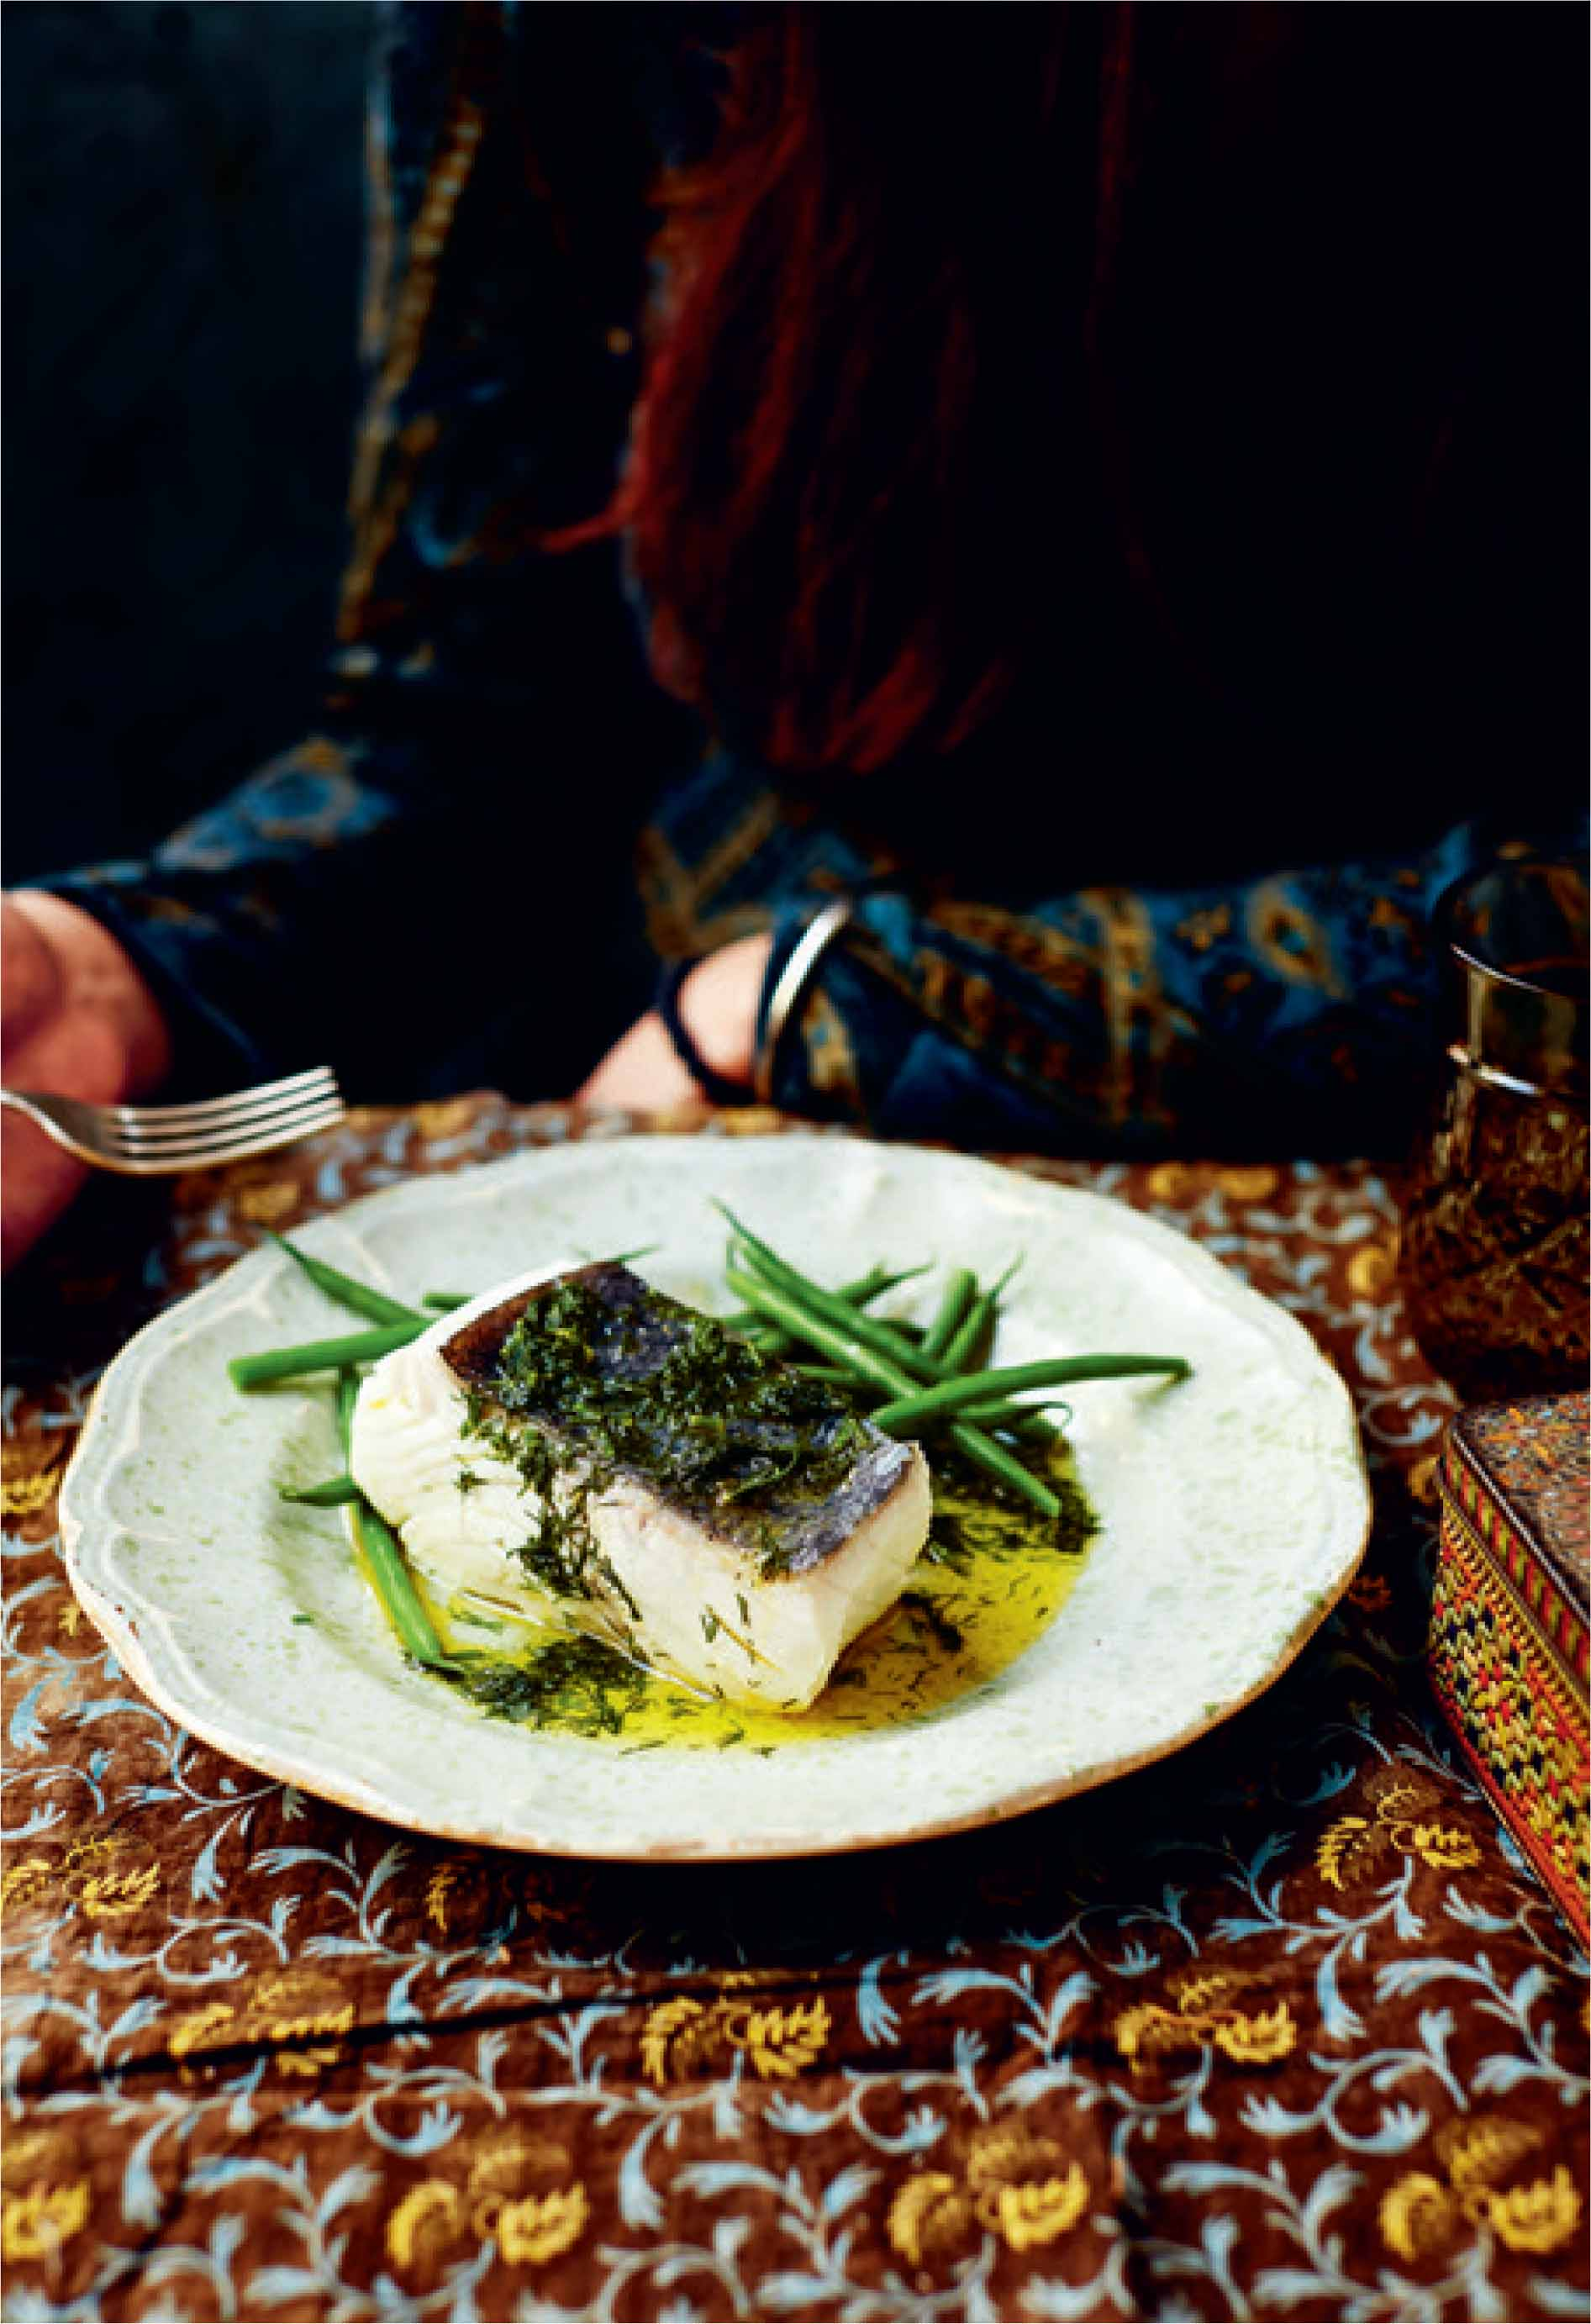 Poached halibut in buttery dill sauce